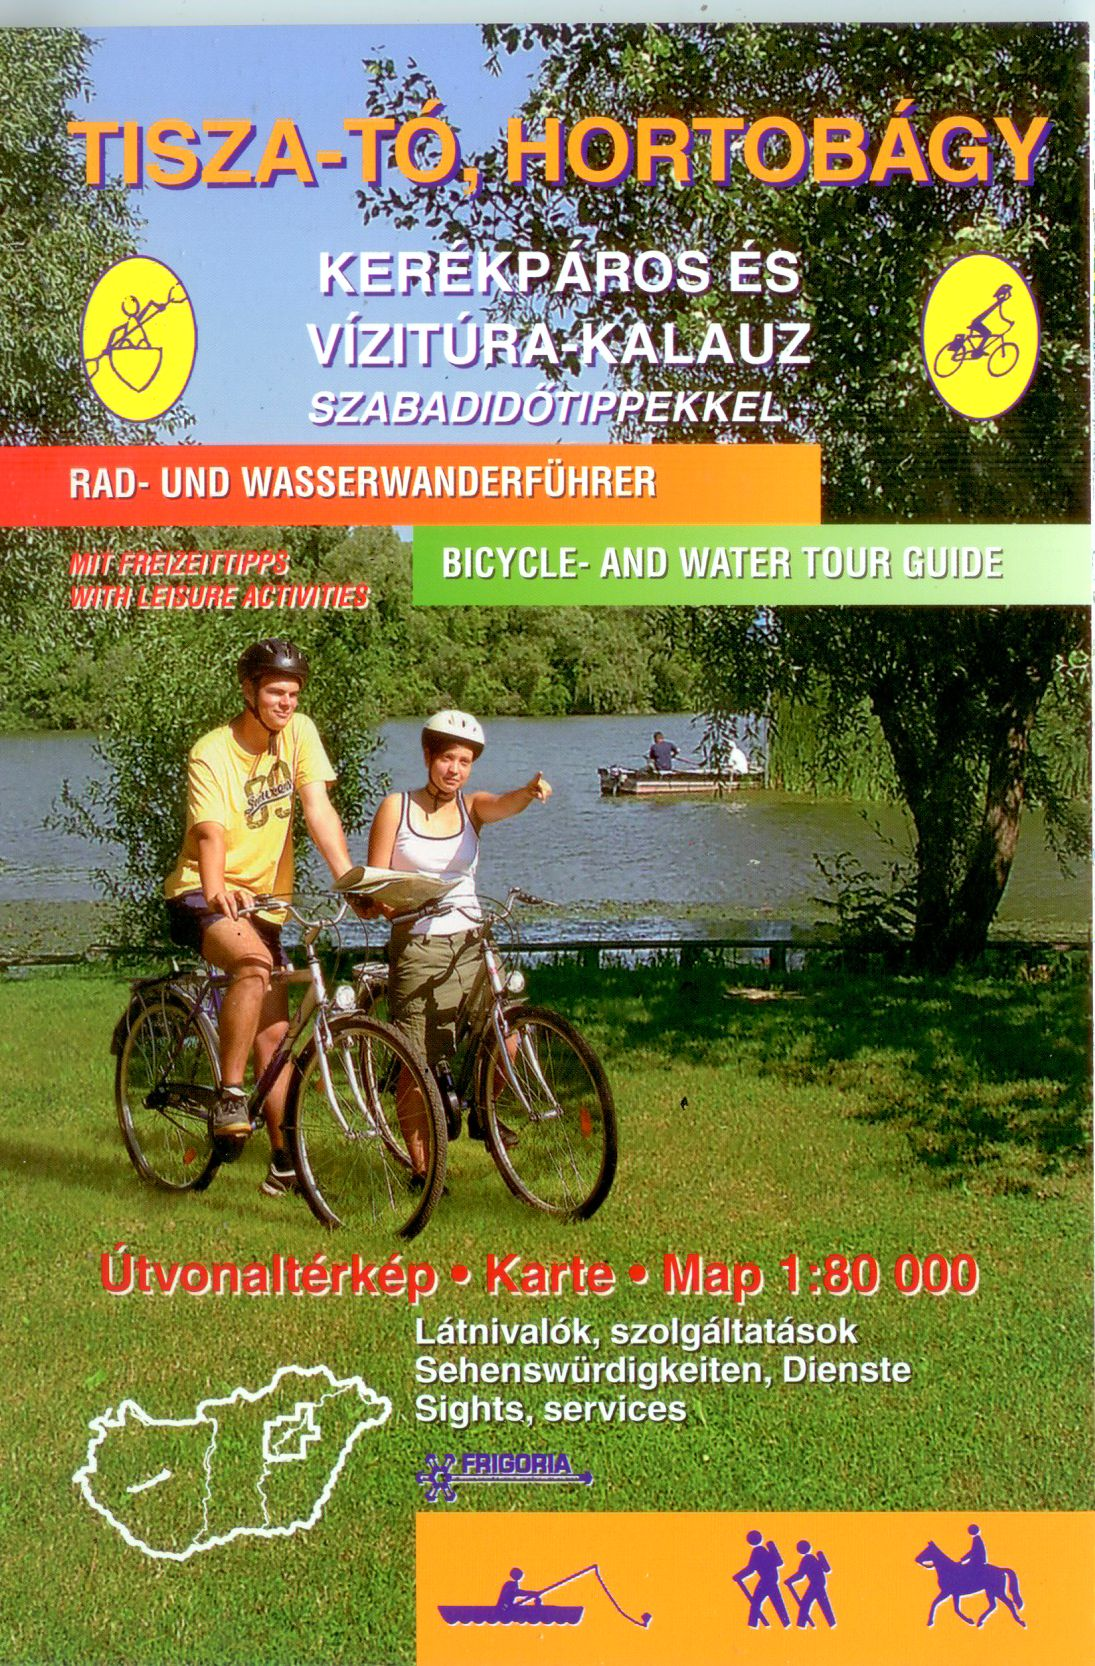 The atlas contains 22 water routes with photos and text in 3 languages (Hungarian, English, German)